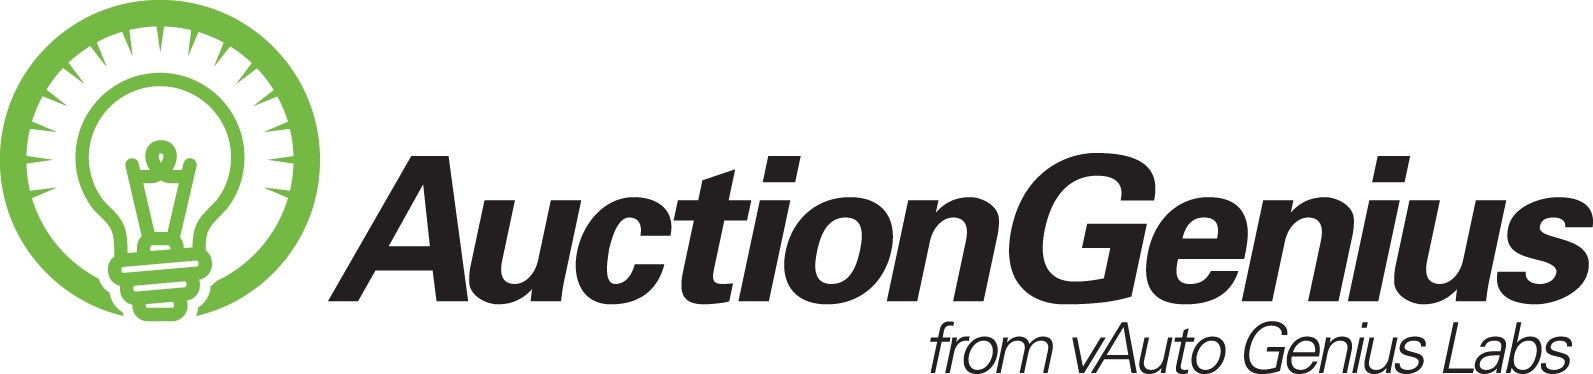 Dealermatch And Auctiongenius Announce Partnership  Eon